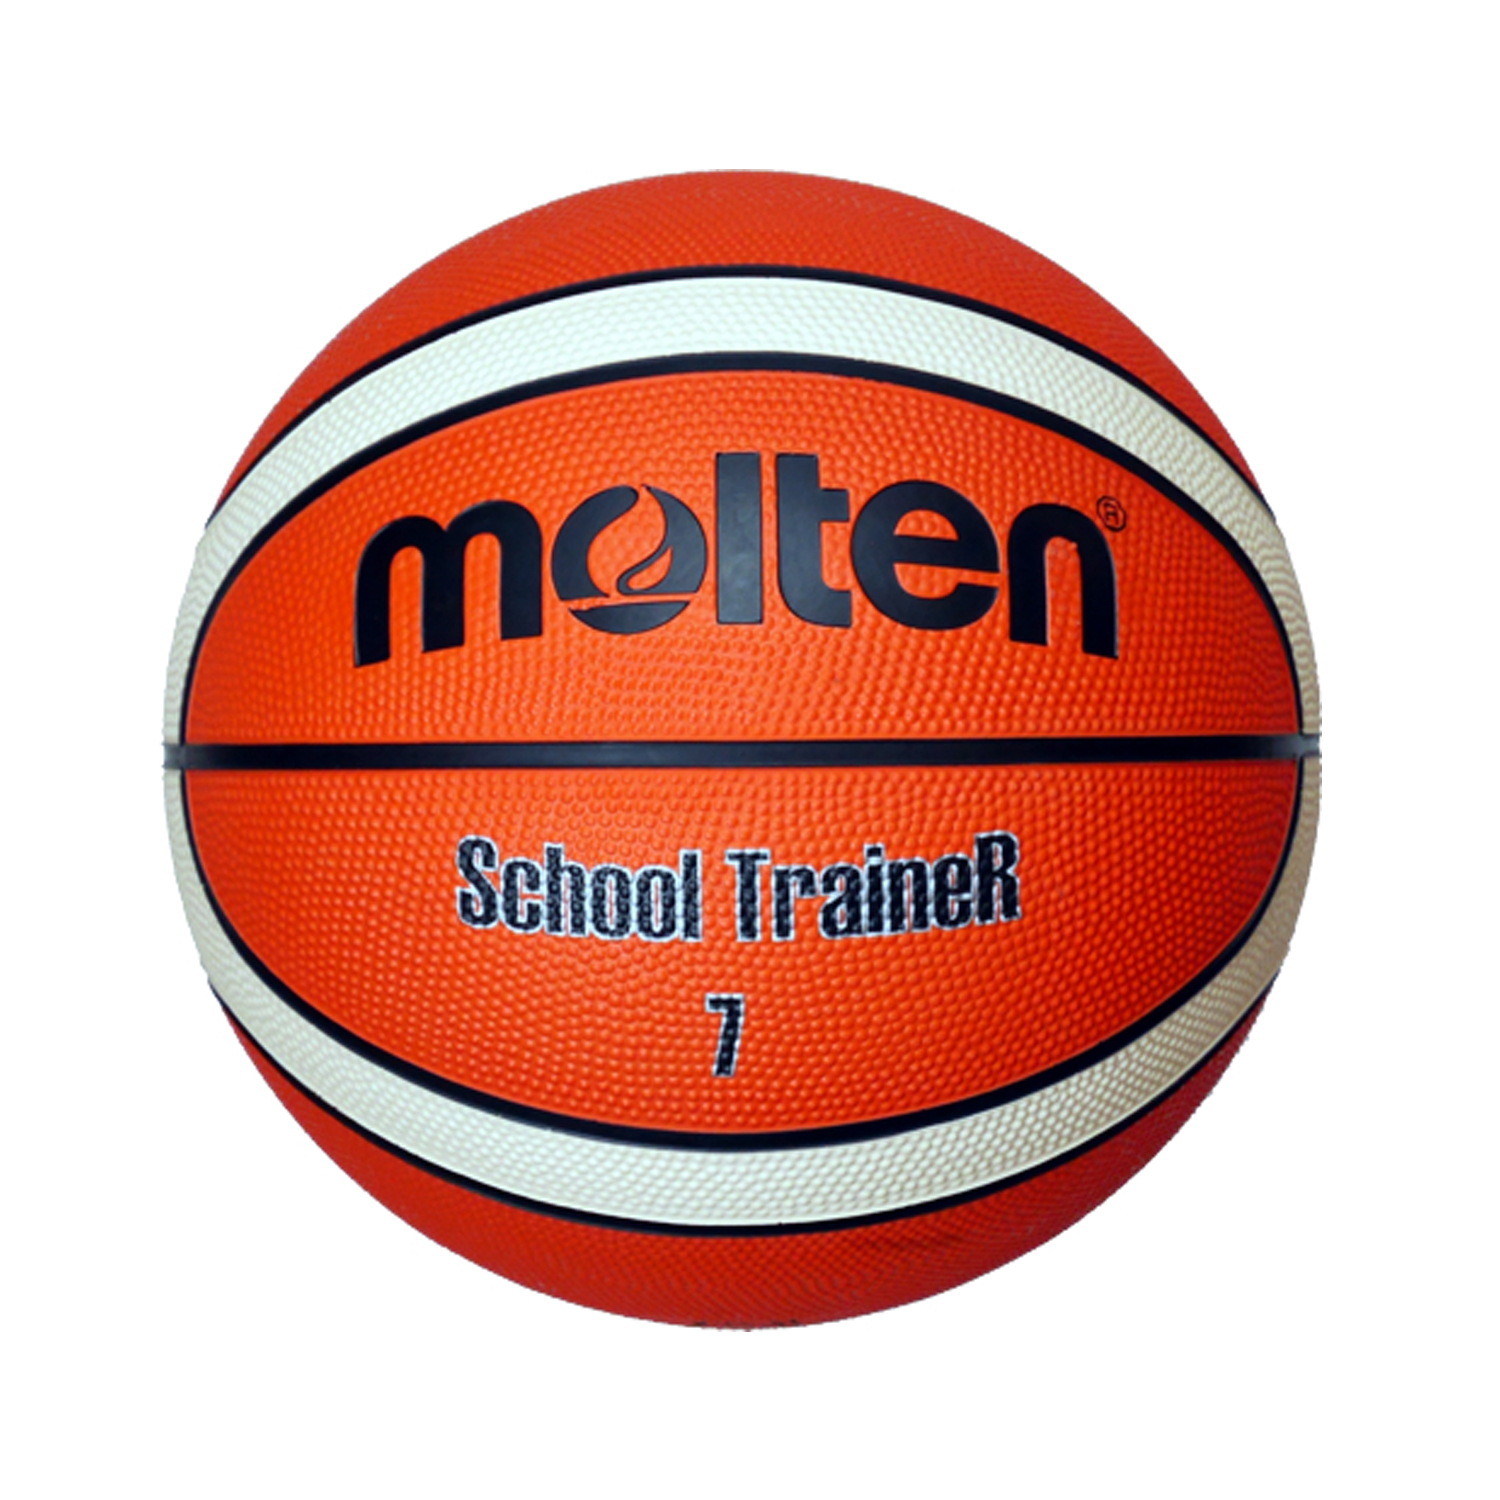 Basketball Molten School Trainer